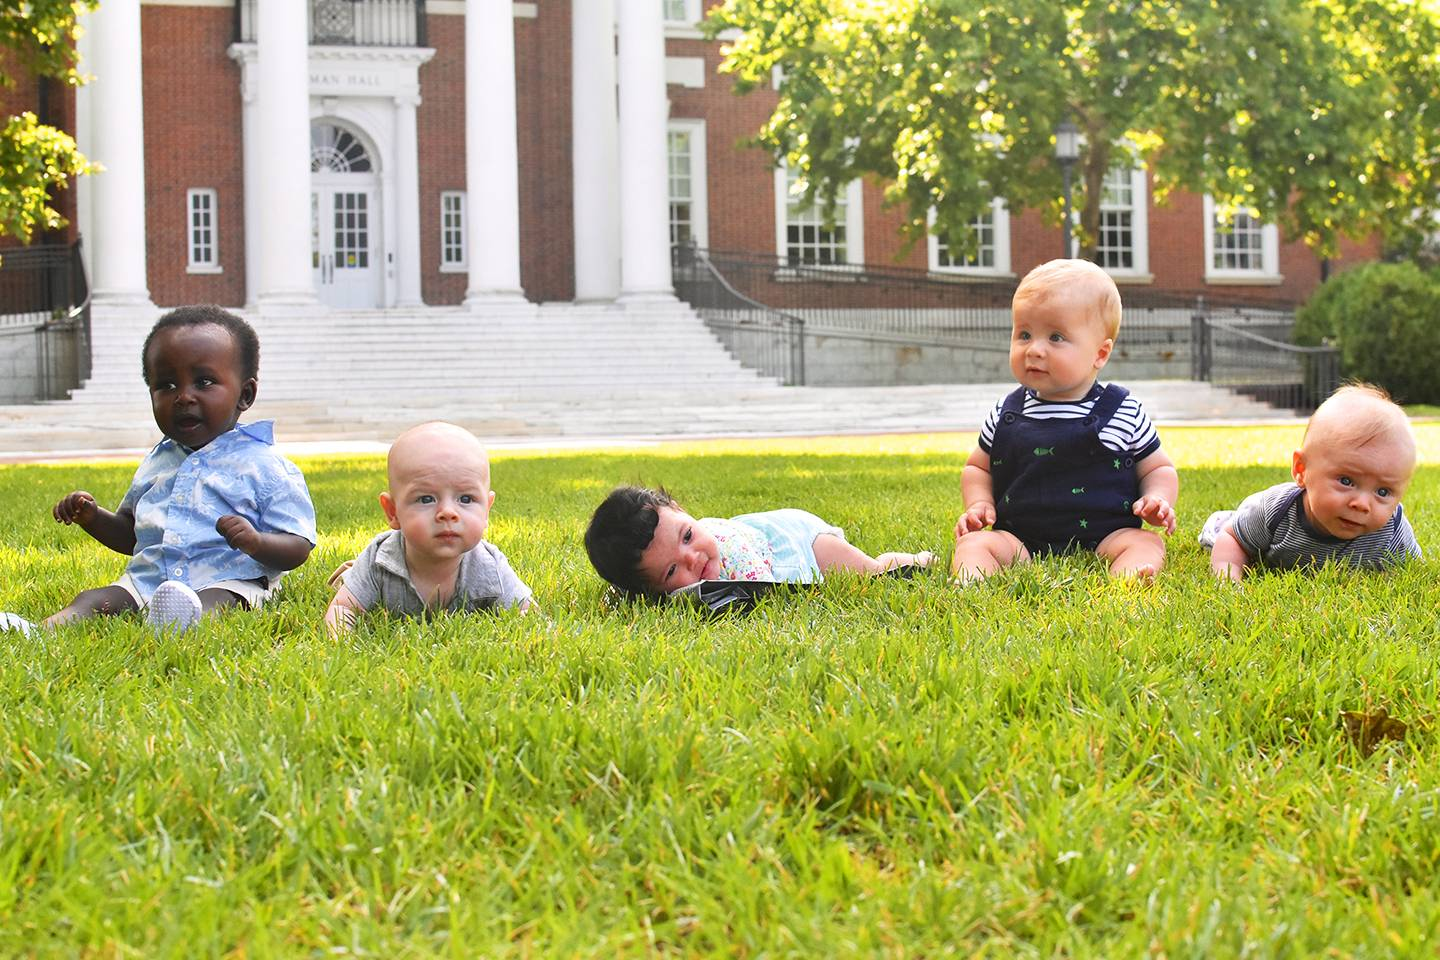 Five babies in the grass